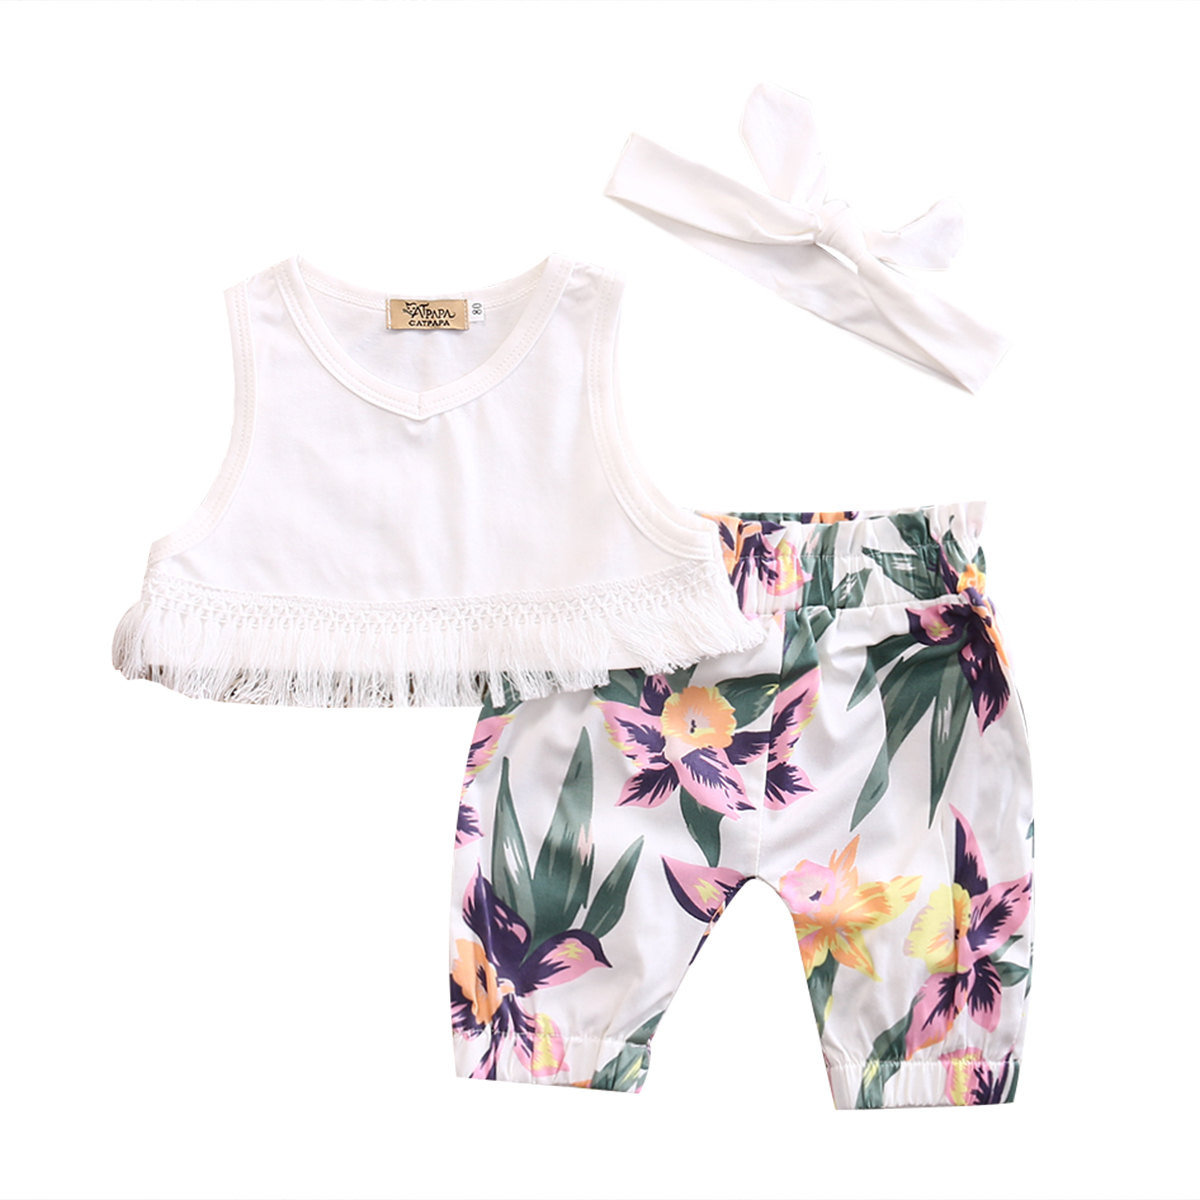 Baby Girl Tops Vest Sleeveless Tops Pants Cute Flower Headband 3pcs Outfits Clothing Cute Newborn Baby Girls Clothes Set Floral flower sleeveless vest t shirt tops vest shorts pants outfit girl clothes set 2pcs baby children girls kids clothing bow knot